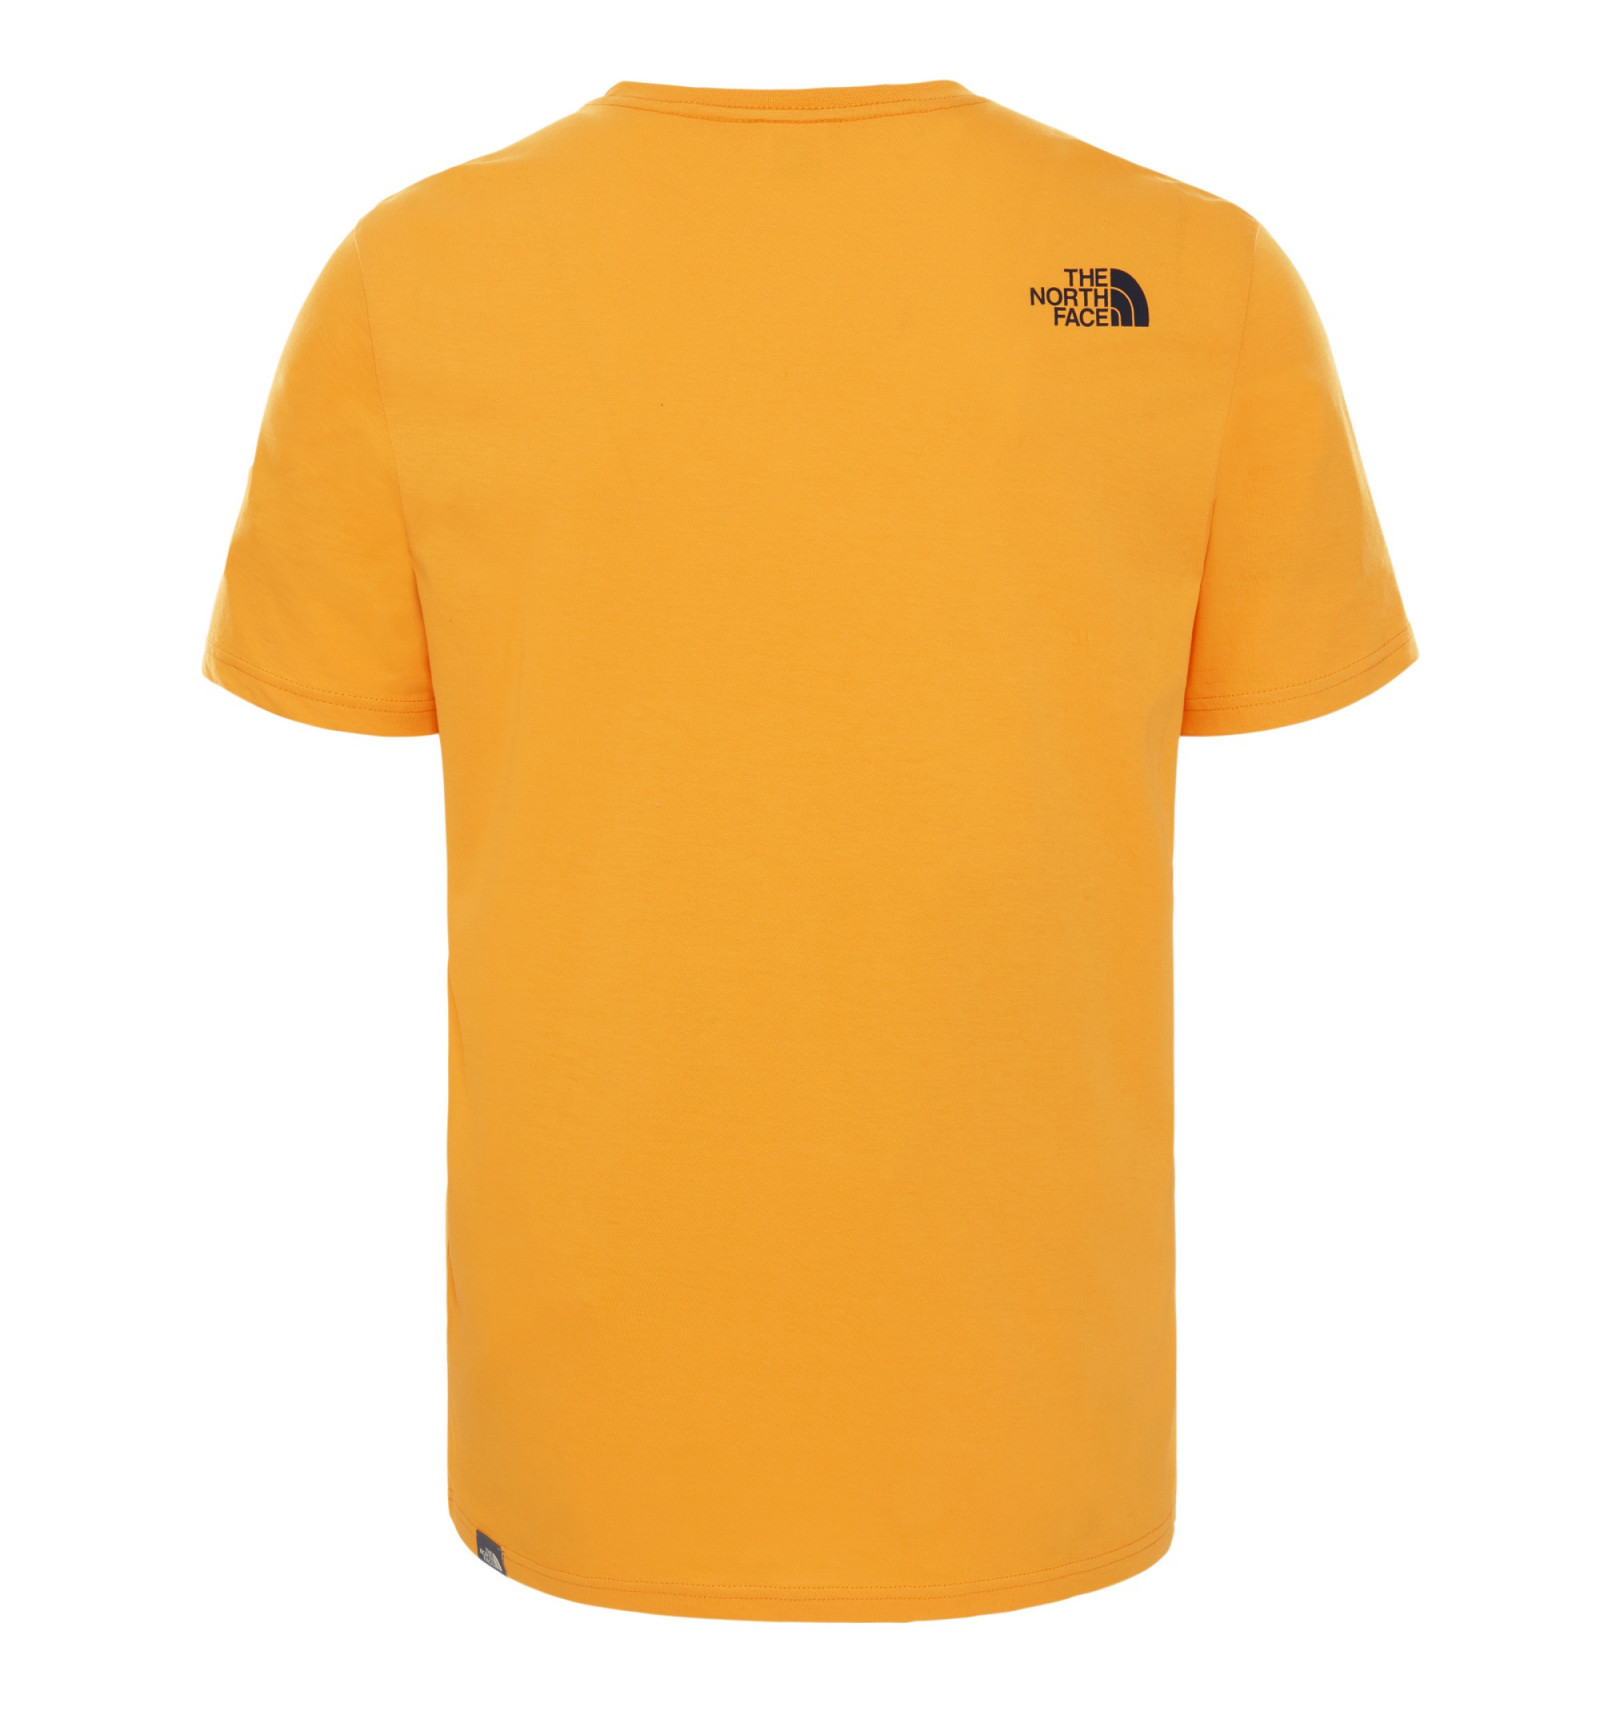 The North Face T-Shirt m:ss Easy Tee Summit Gold_2